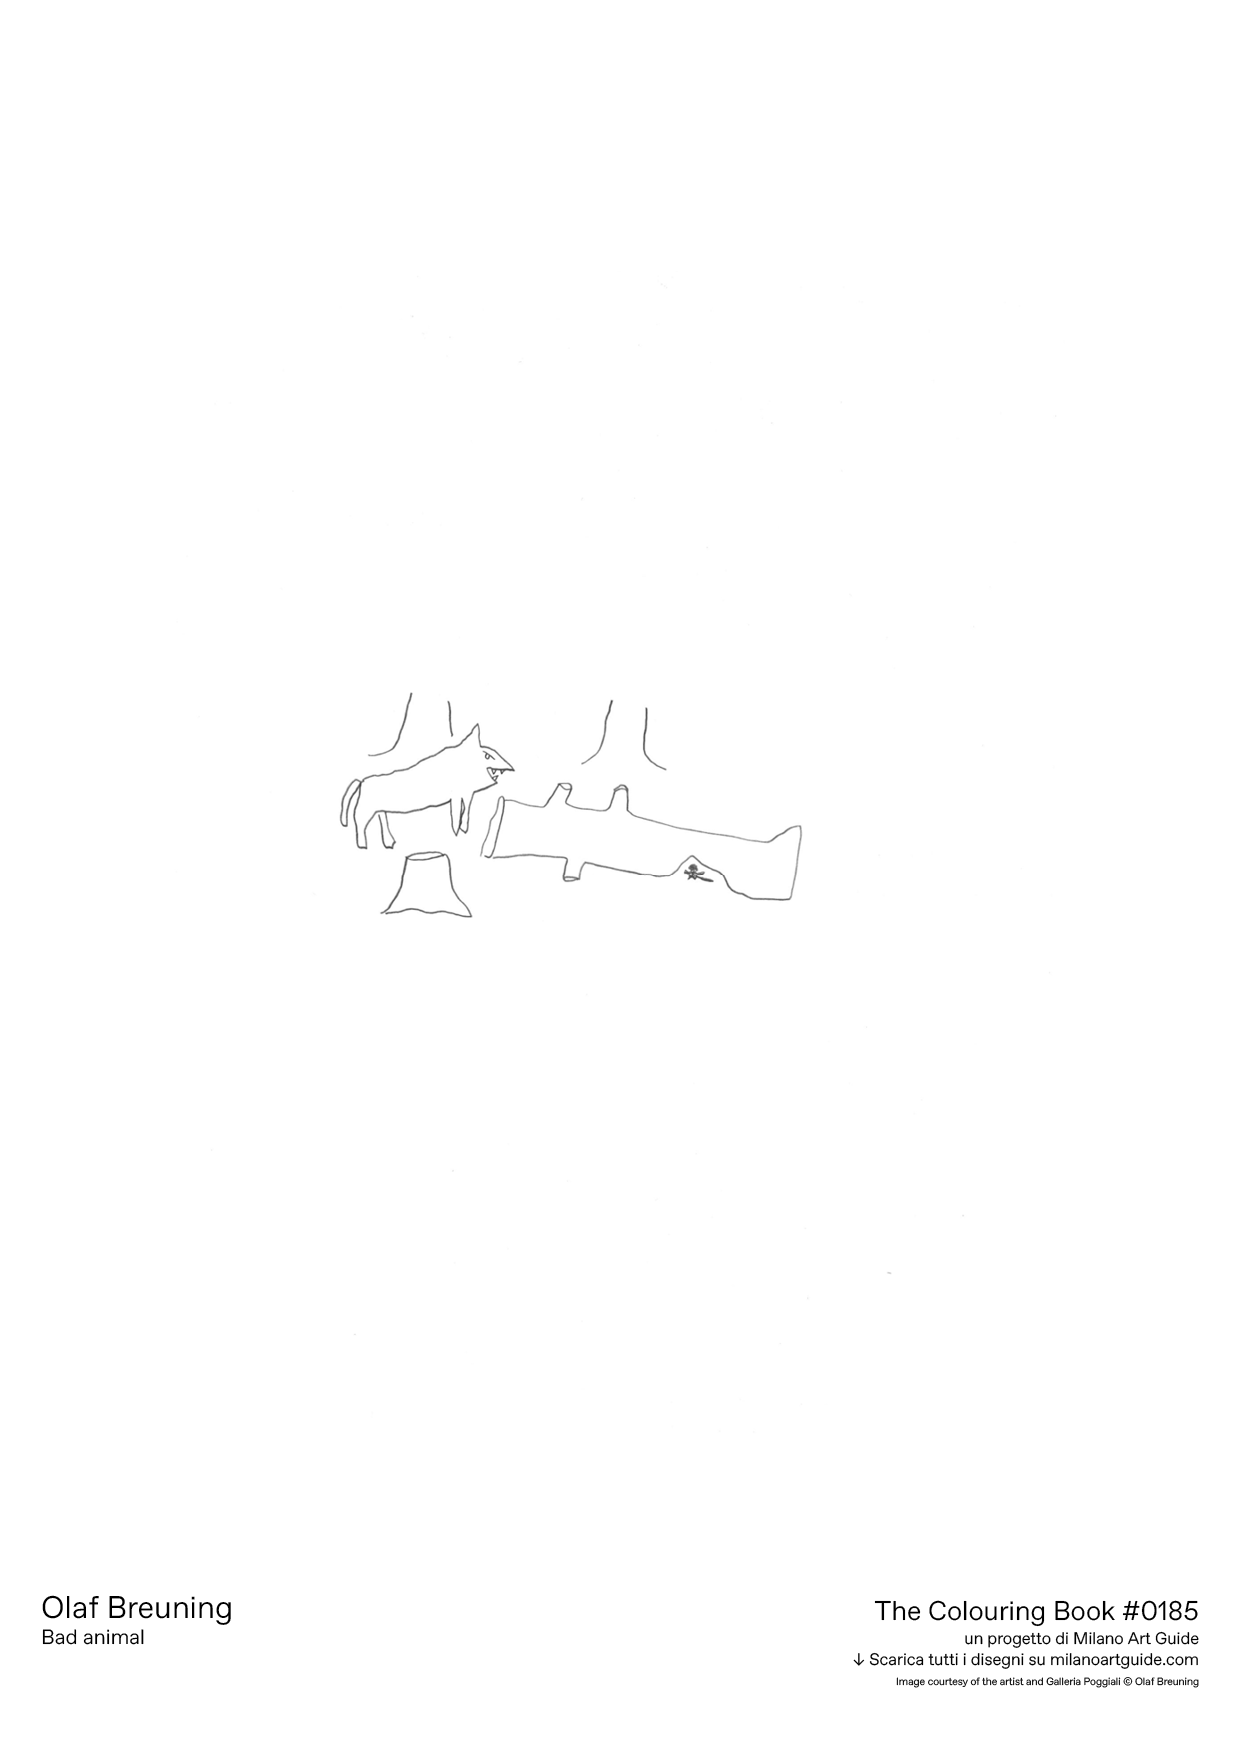 185_OlafBreuning_THECOLOURINGBOOK_MILANOARTGUIDE.png